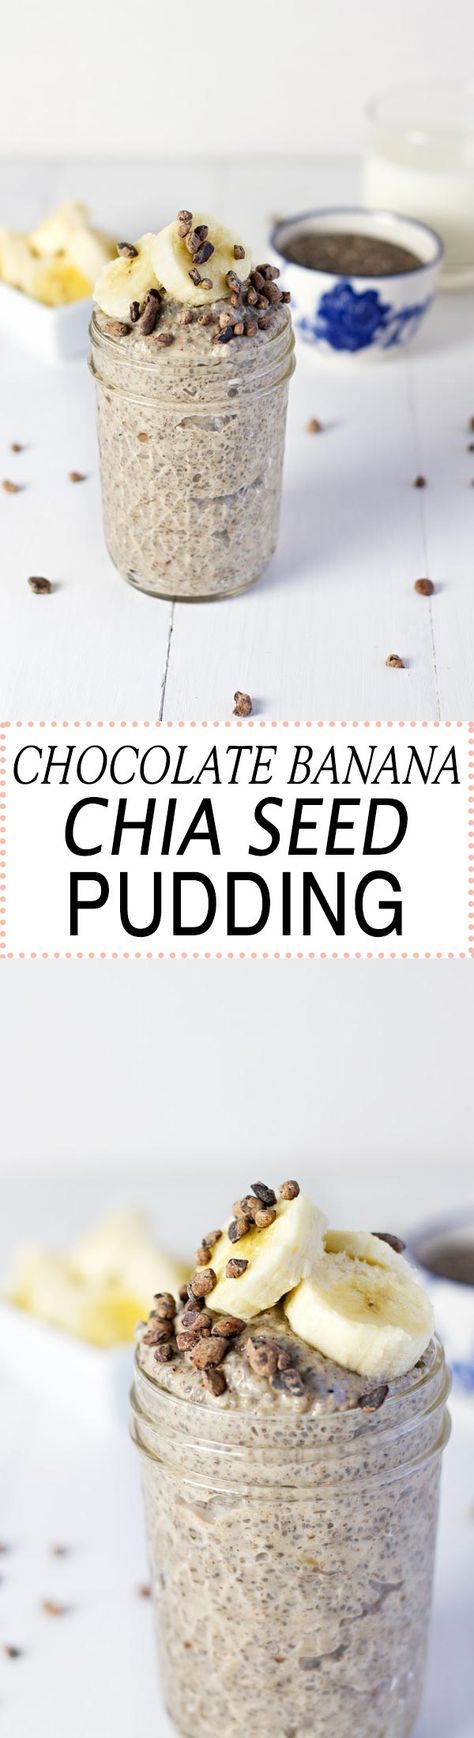 Chocolate Banana Chia Seed Pudding!